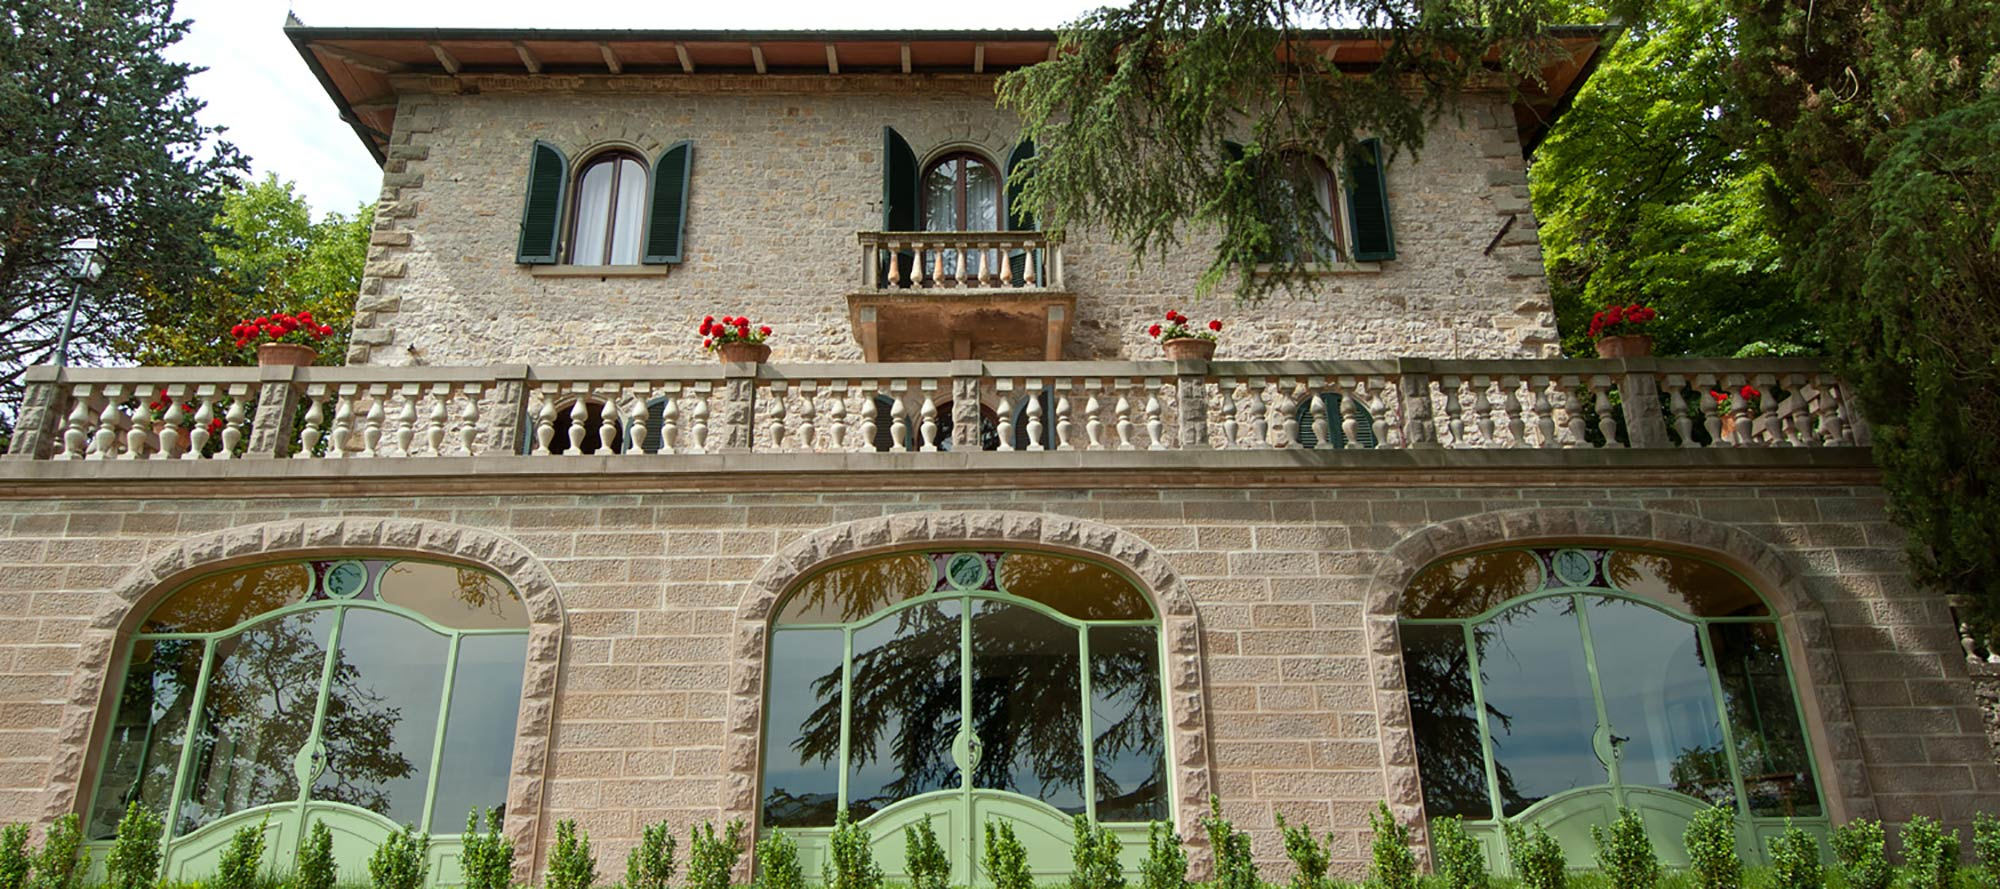 An impressive example of Tuscan manor this